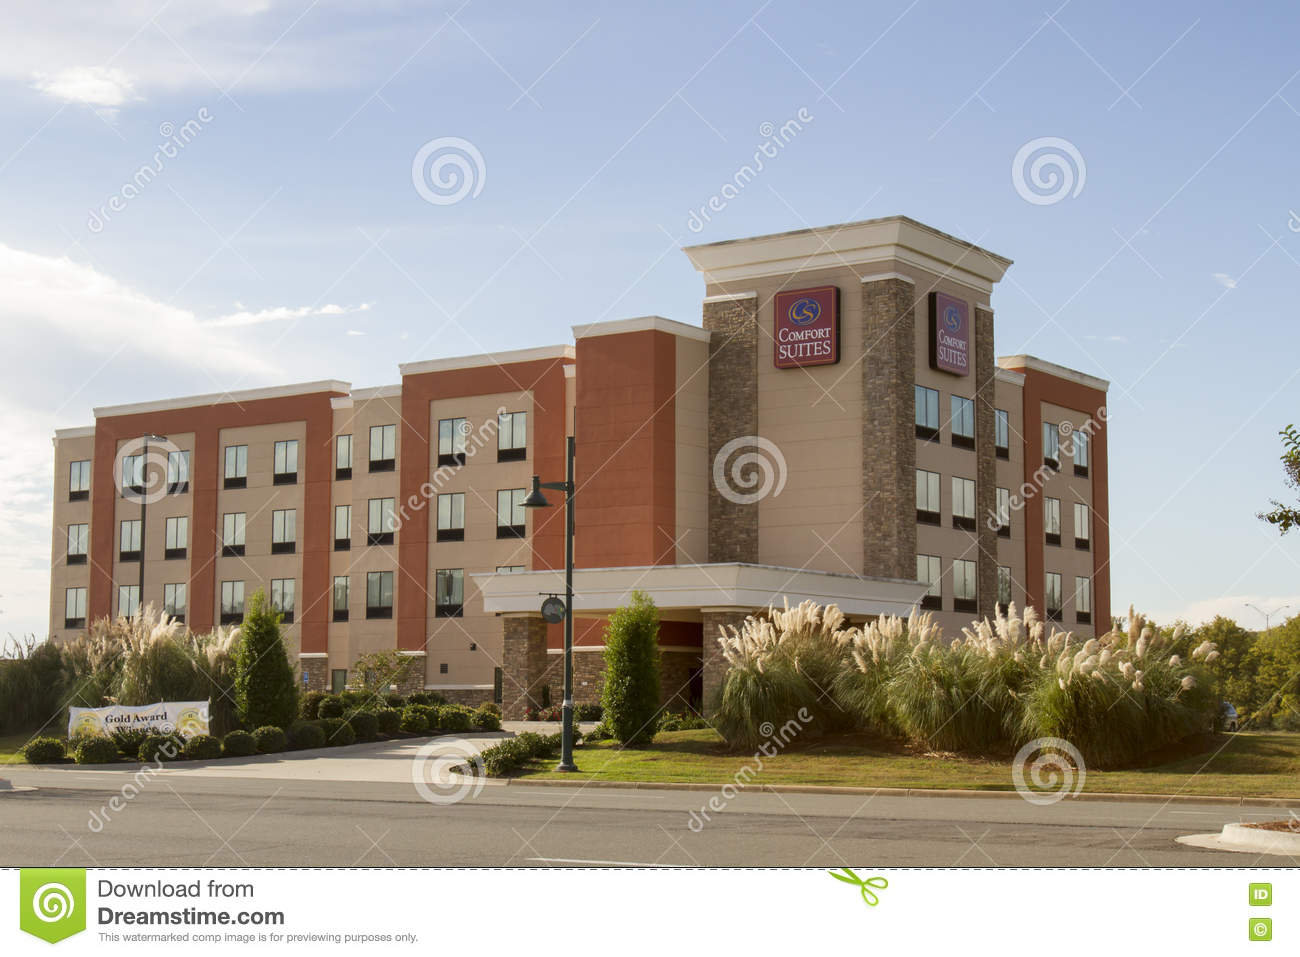 Comfort Suites Brand Chain Hotel Editorial Photography Image Of